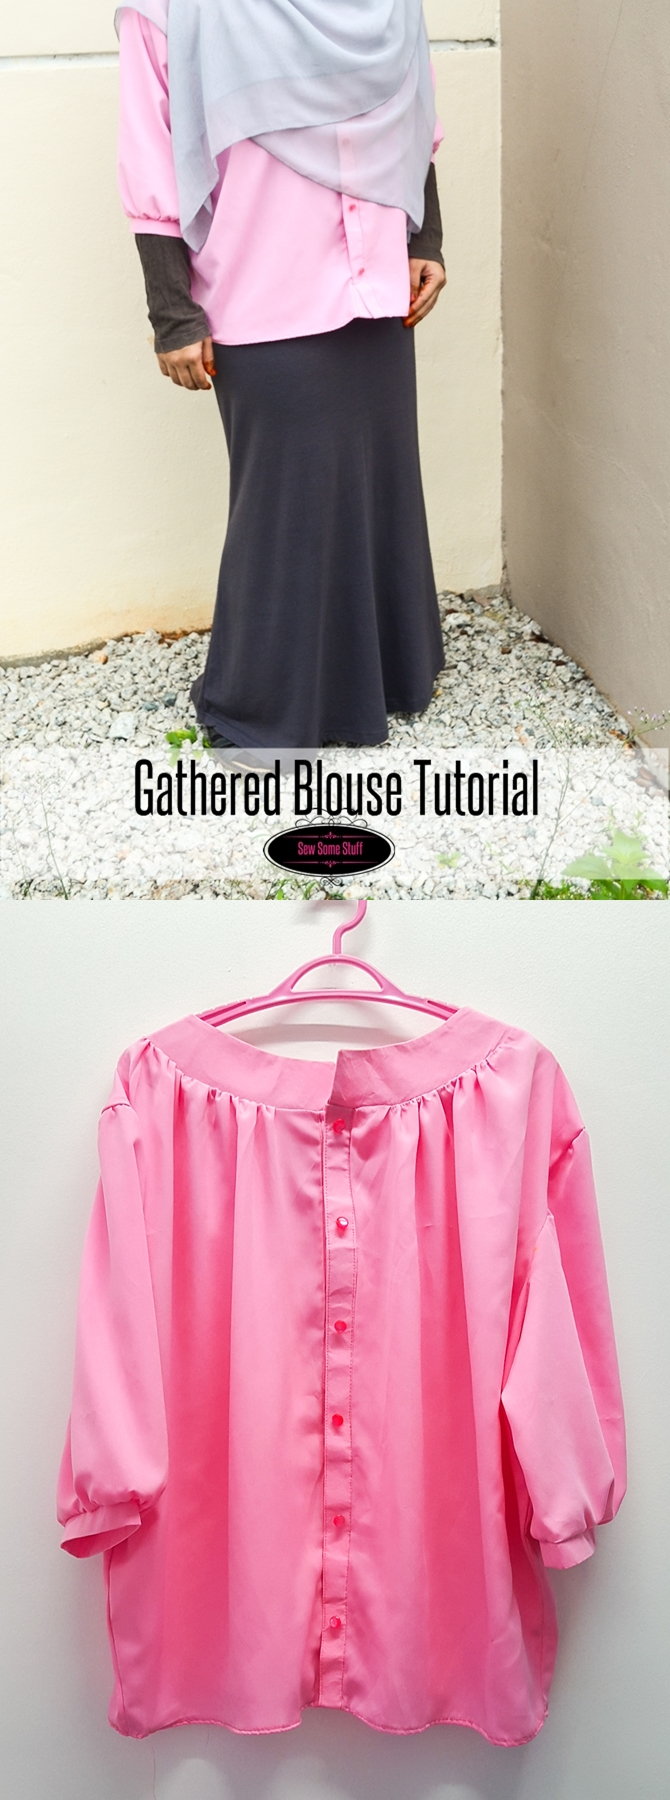 Plus size gathered blouse sewing tutorial on sewsomestuff.com